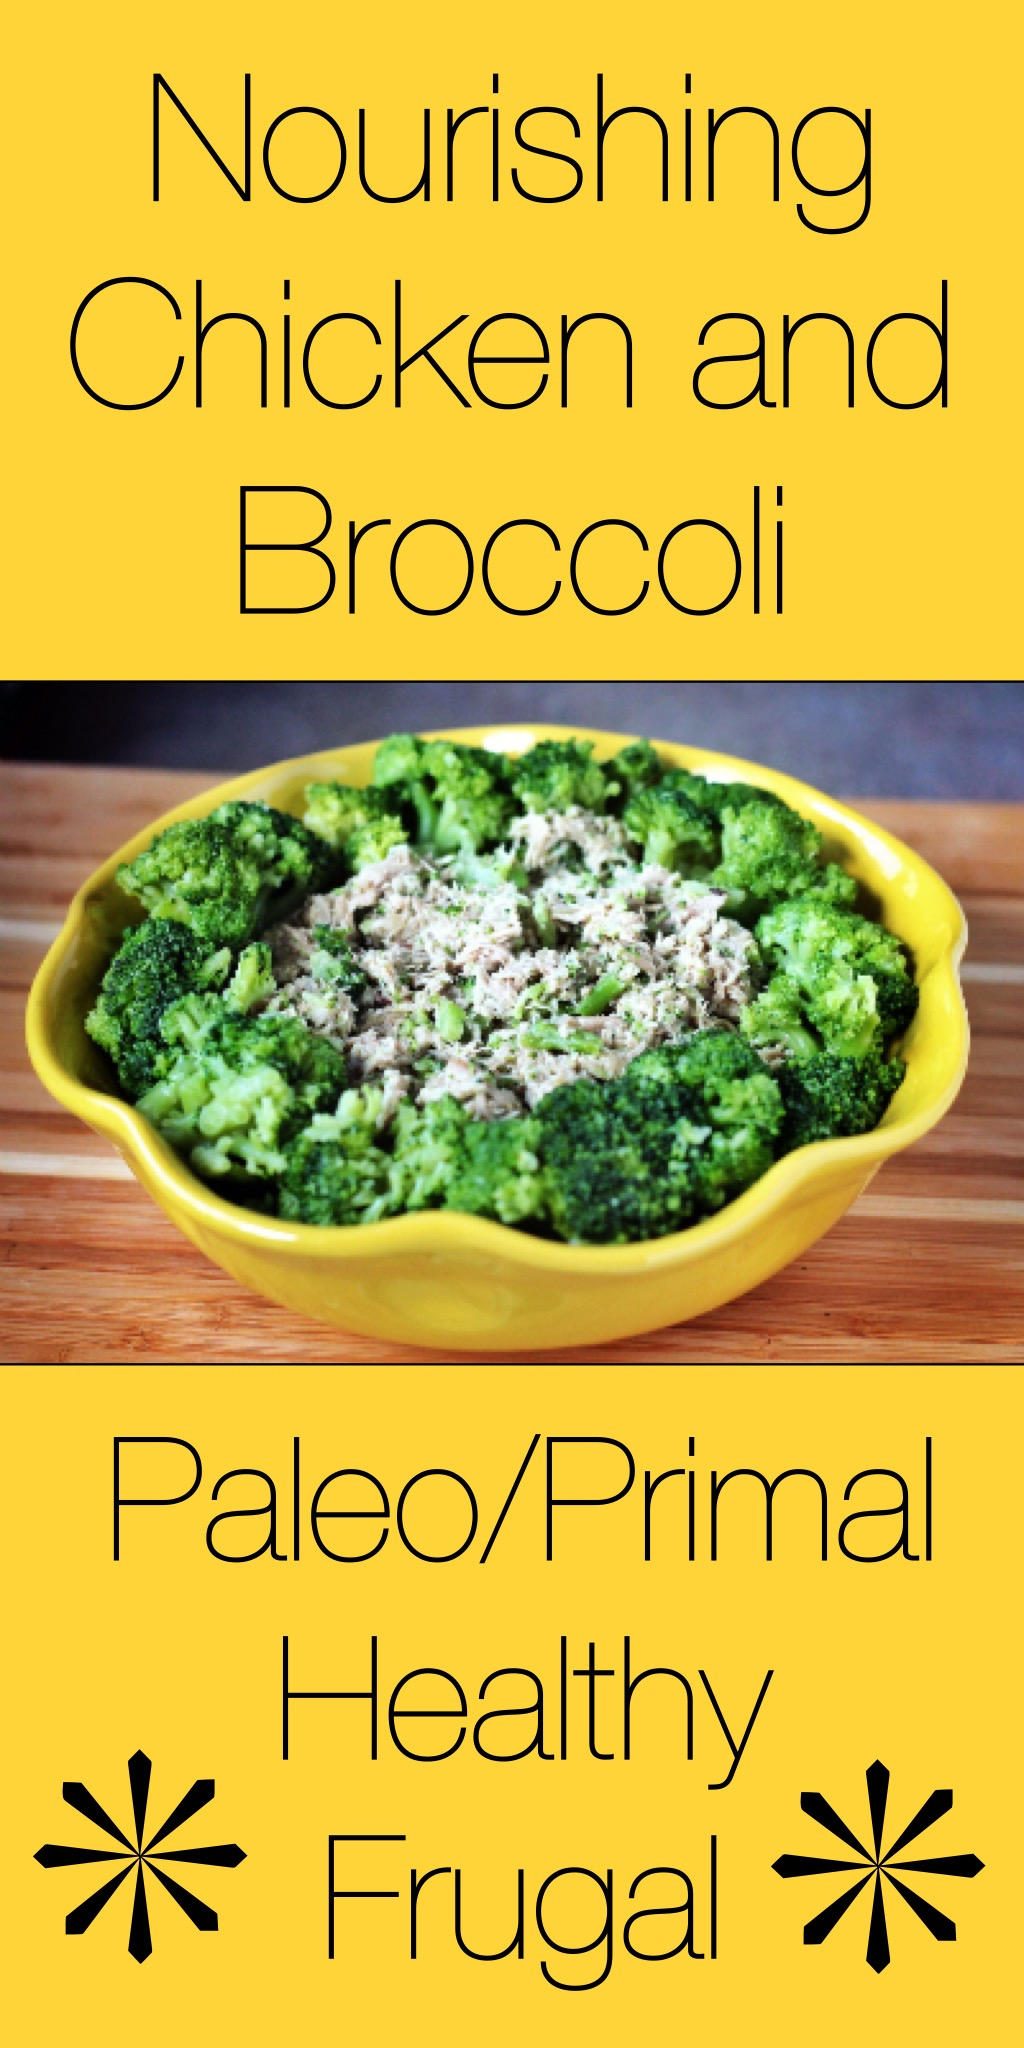 Creamy, nourishing chicken and broccoli - great way to use ALL of a chicken!